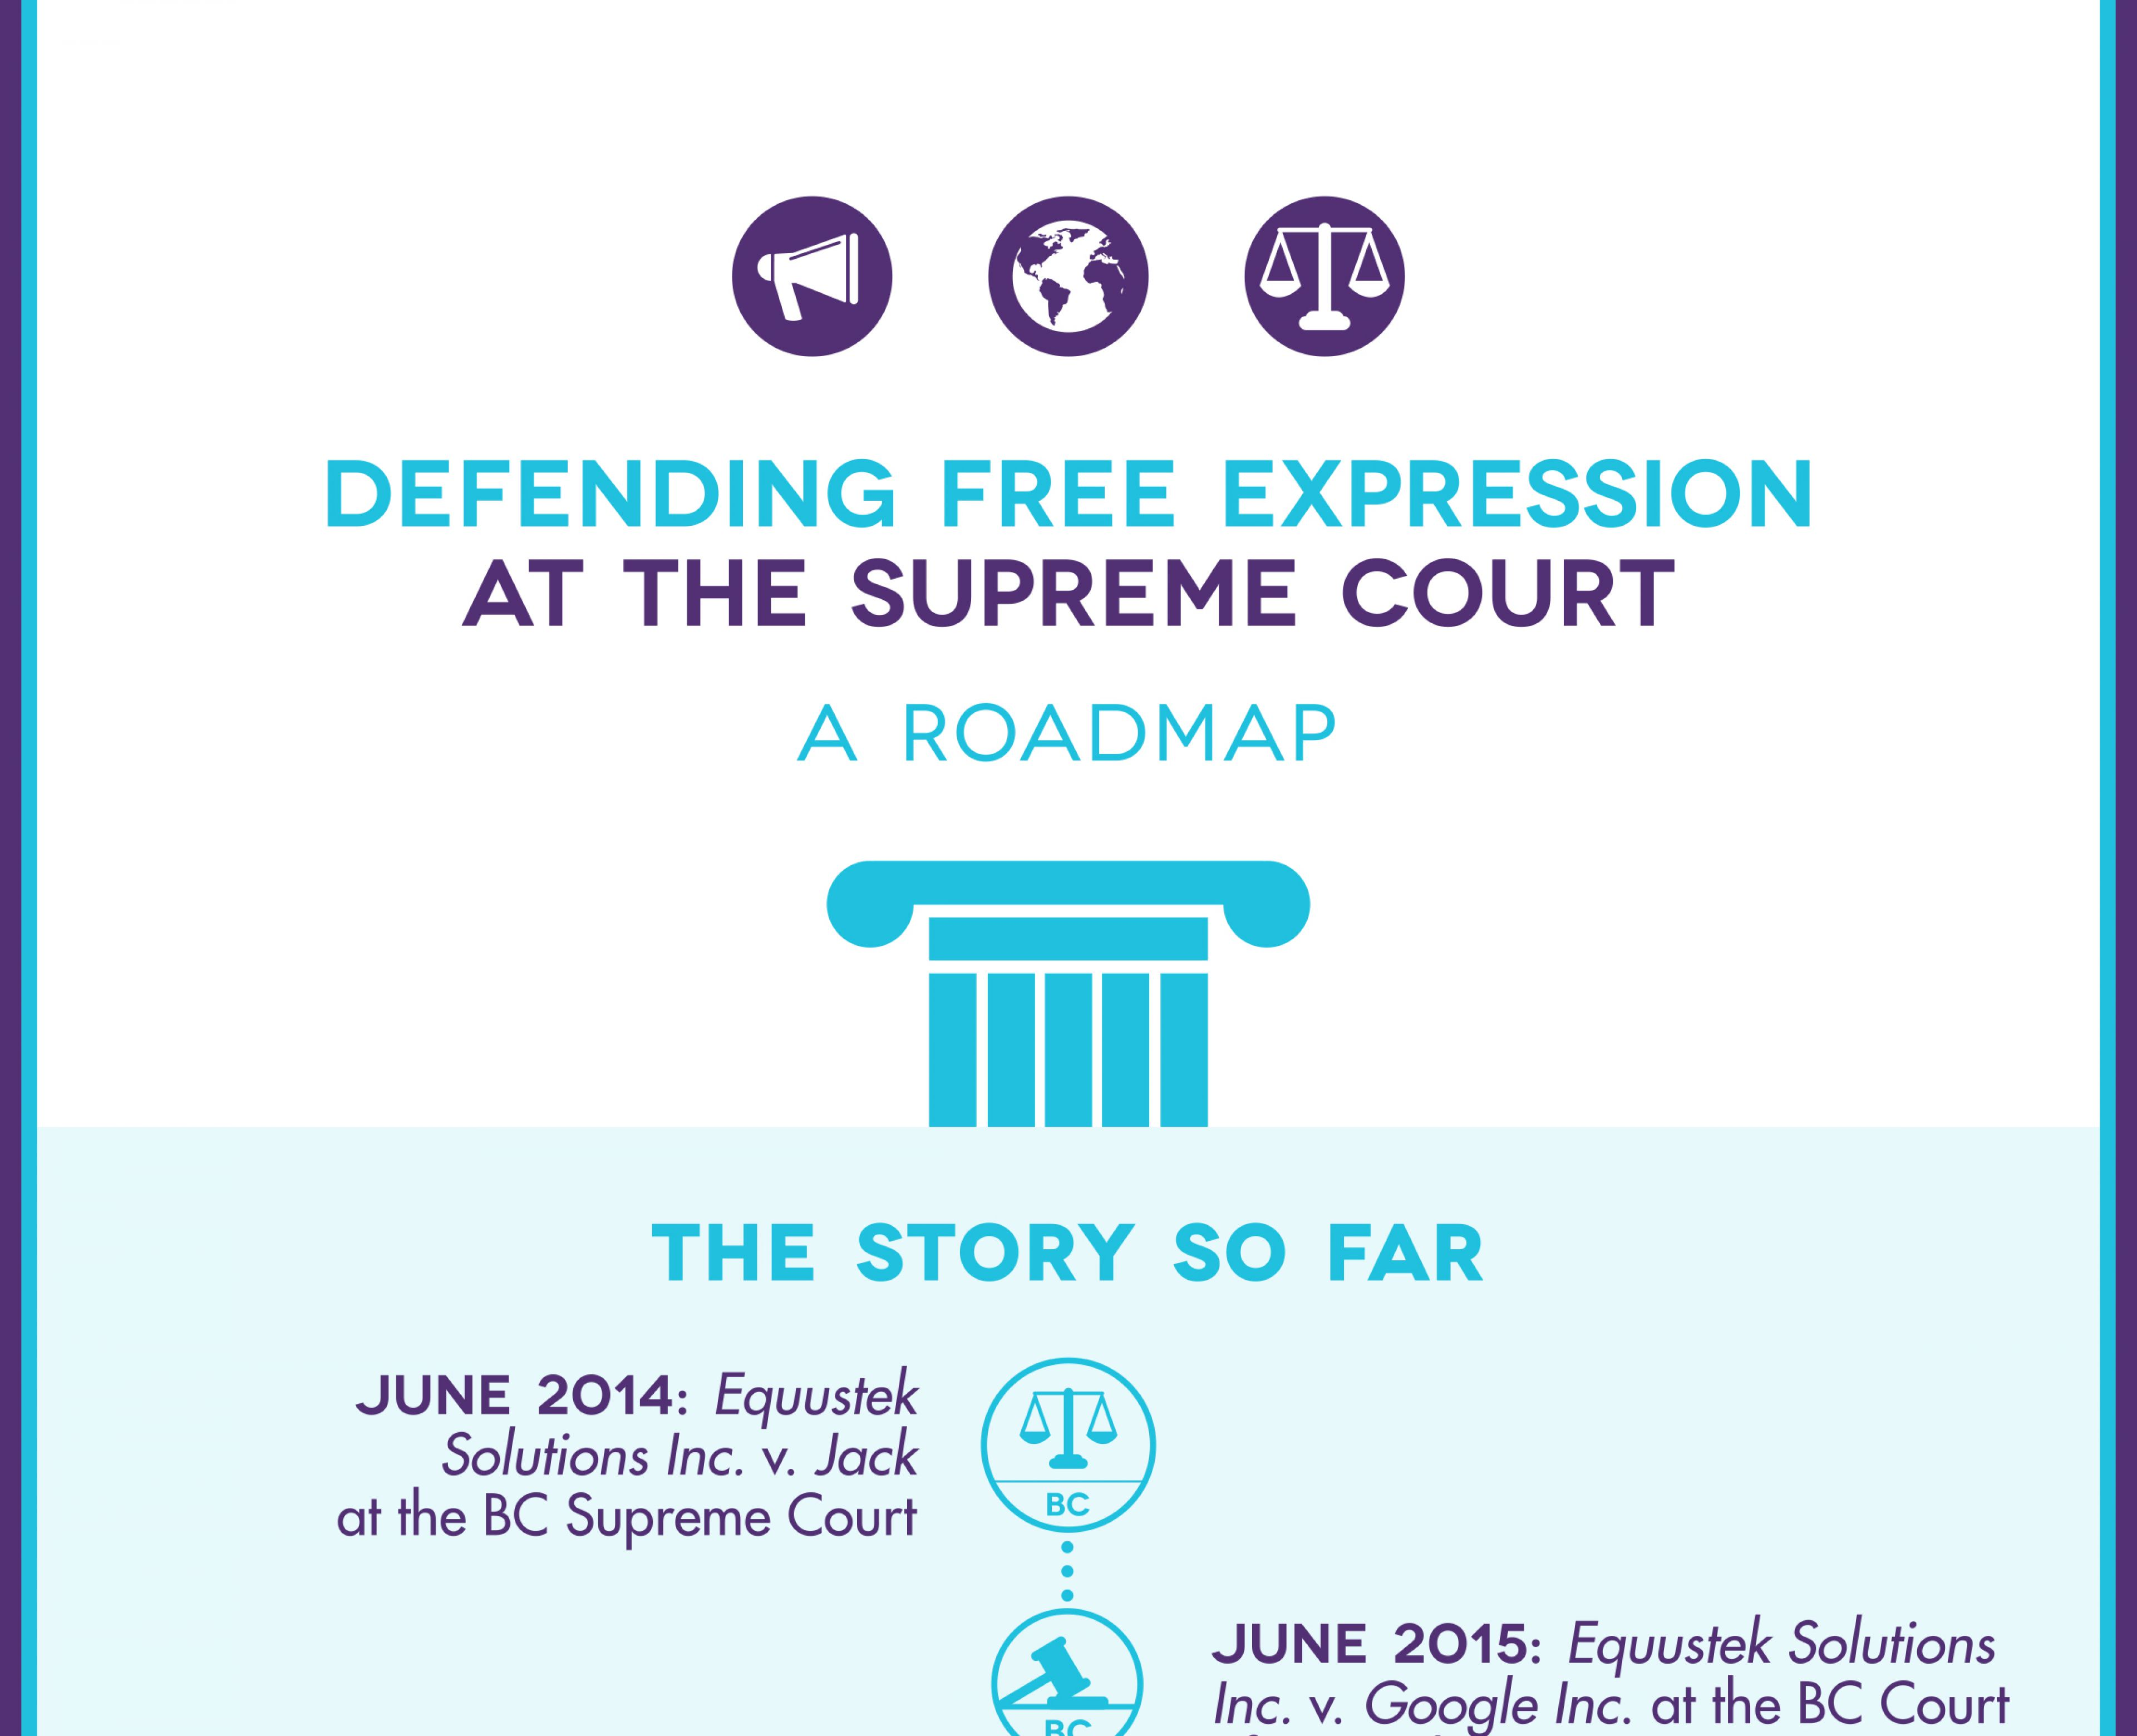 Roadmap: Defending Free Expression at the Supreme Court